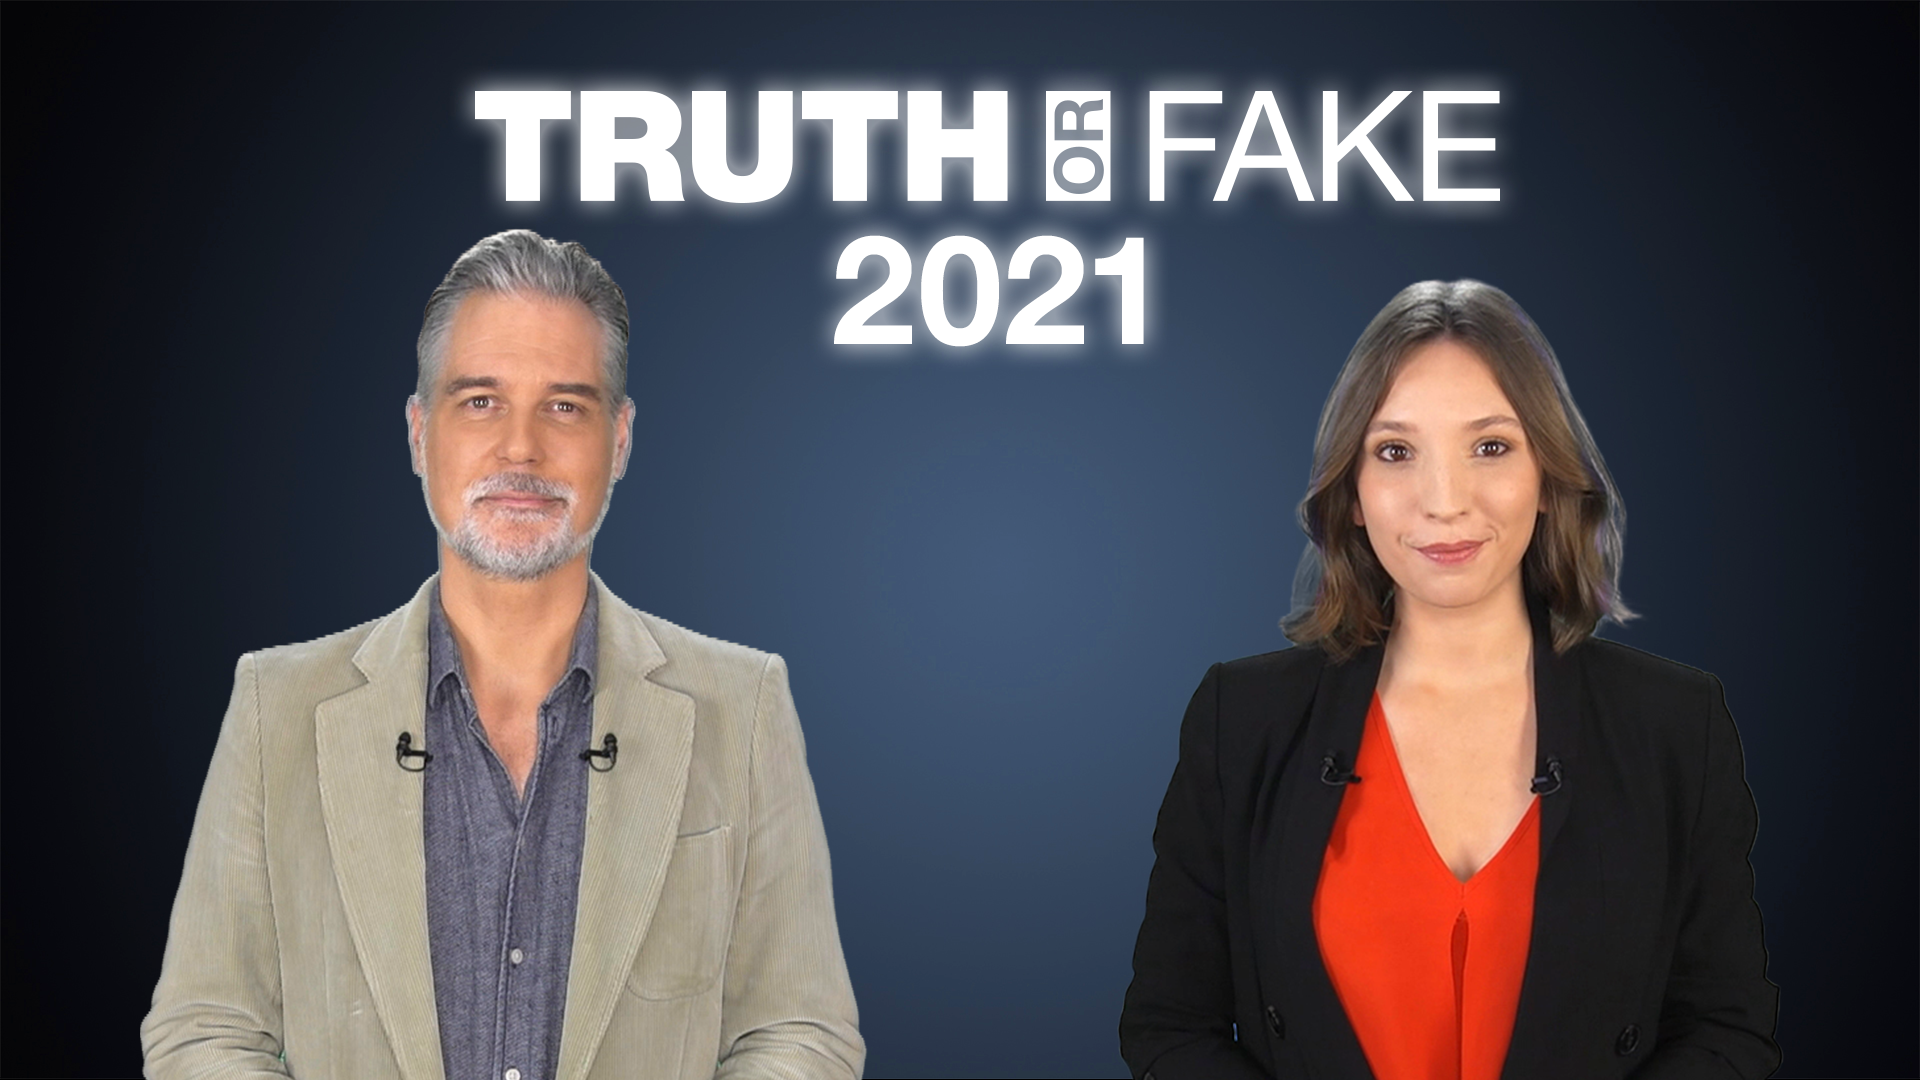 In the 2021 edition of Truth or Fake, we answer questions from French high schoolers about fake news online and how to debunk it.